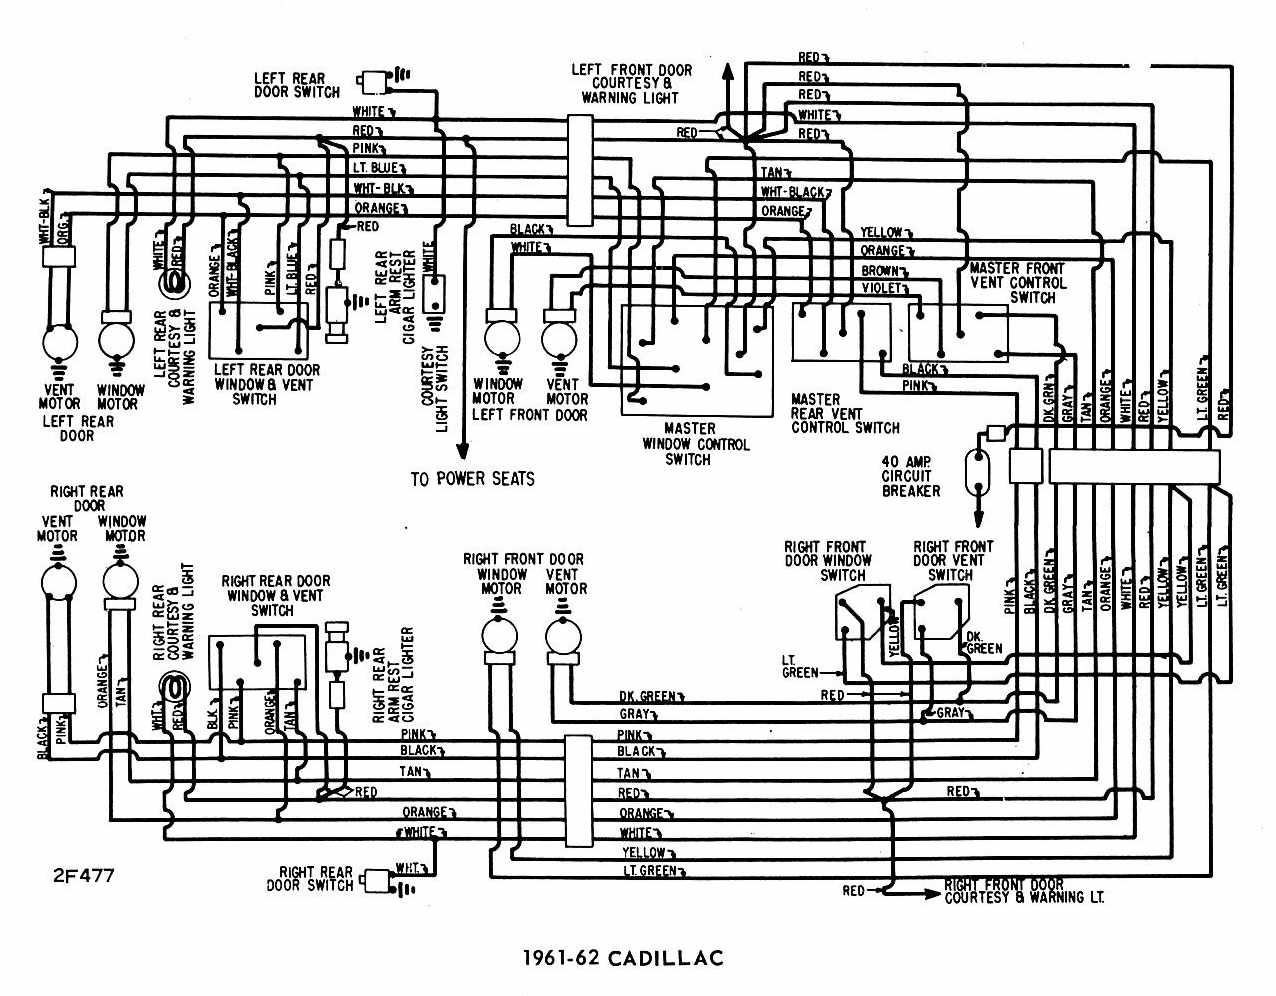 Automotive Electrical Wiring Diagram Pdf